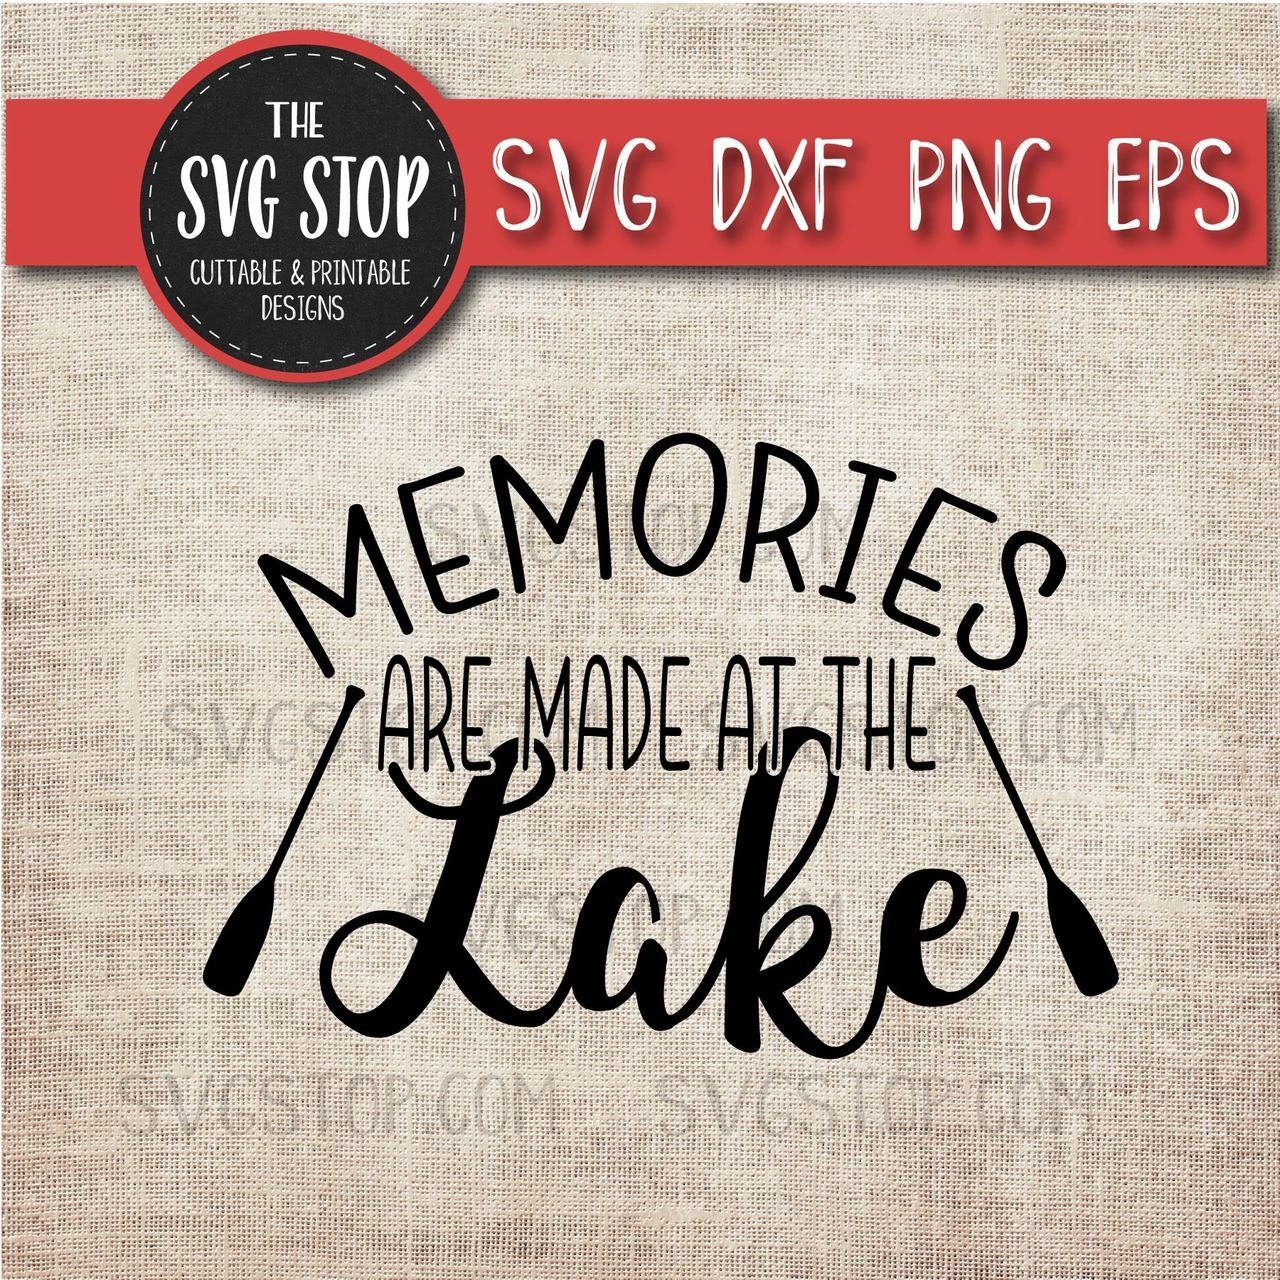 Memories clipart file. Are made at the